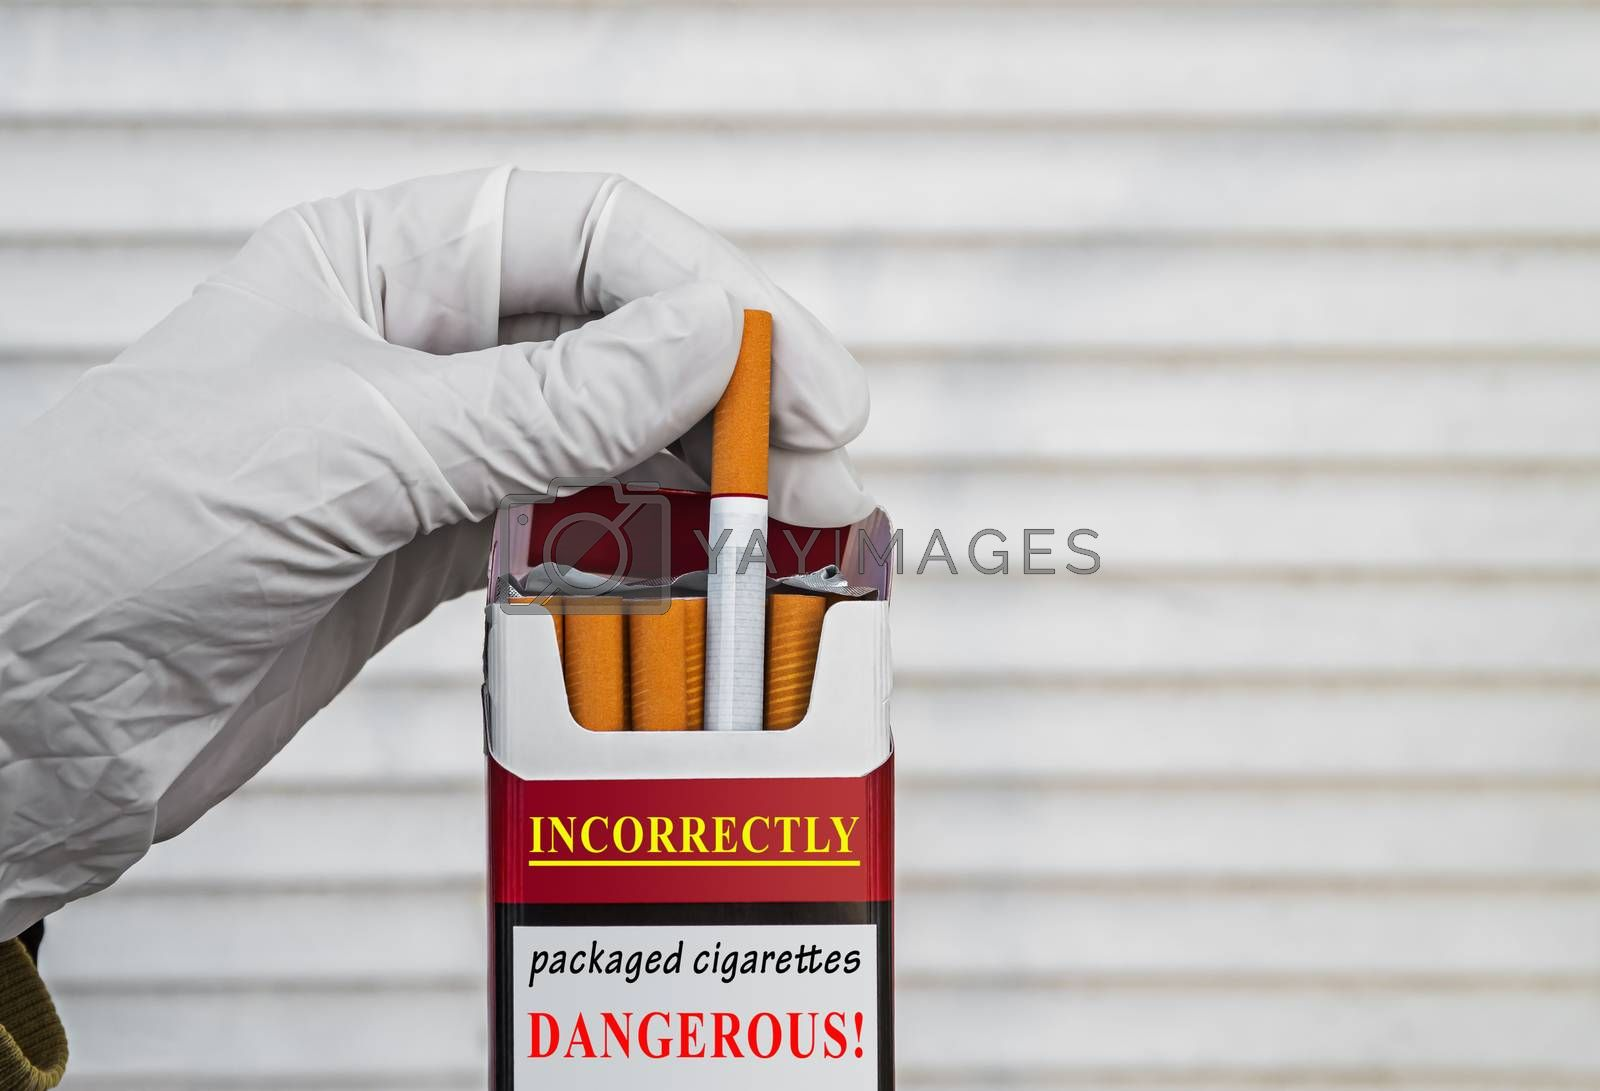 Example of improperly packaged cigarettes that can smoker with a virus or bacterium